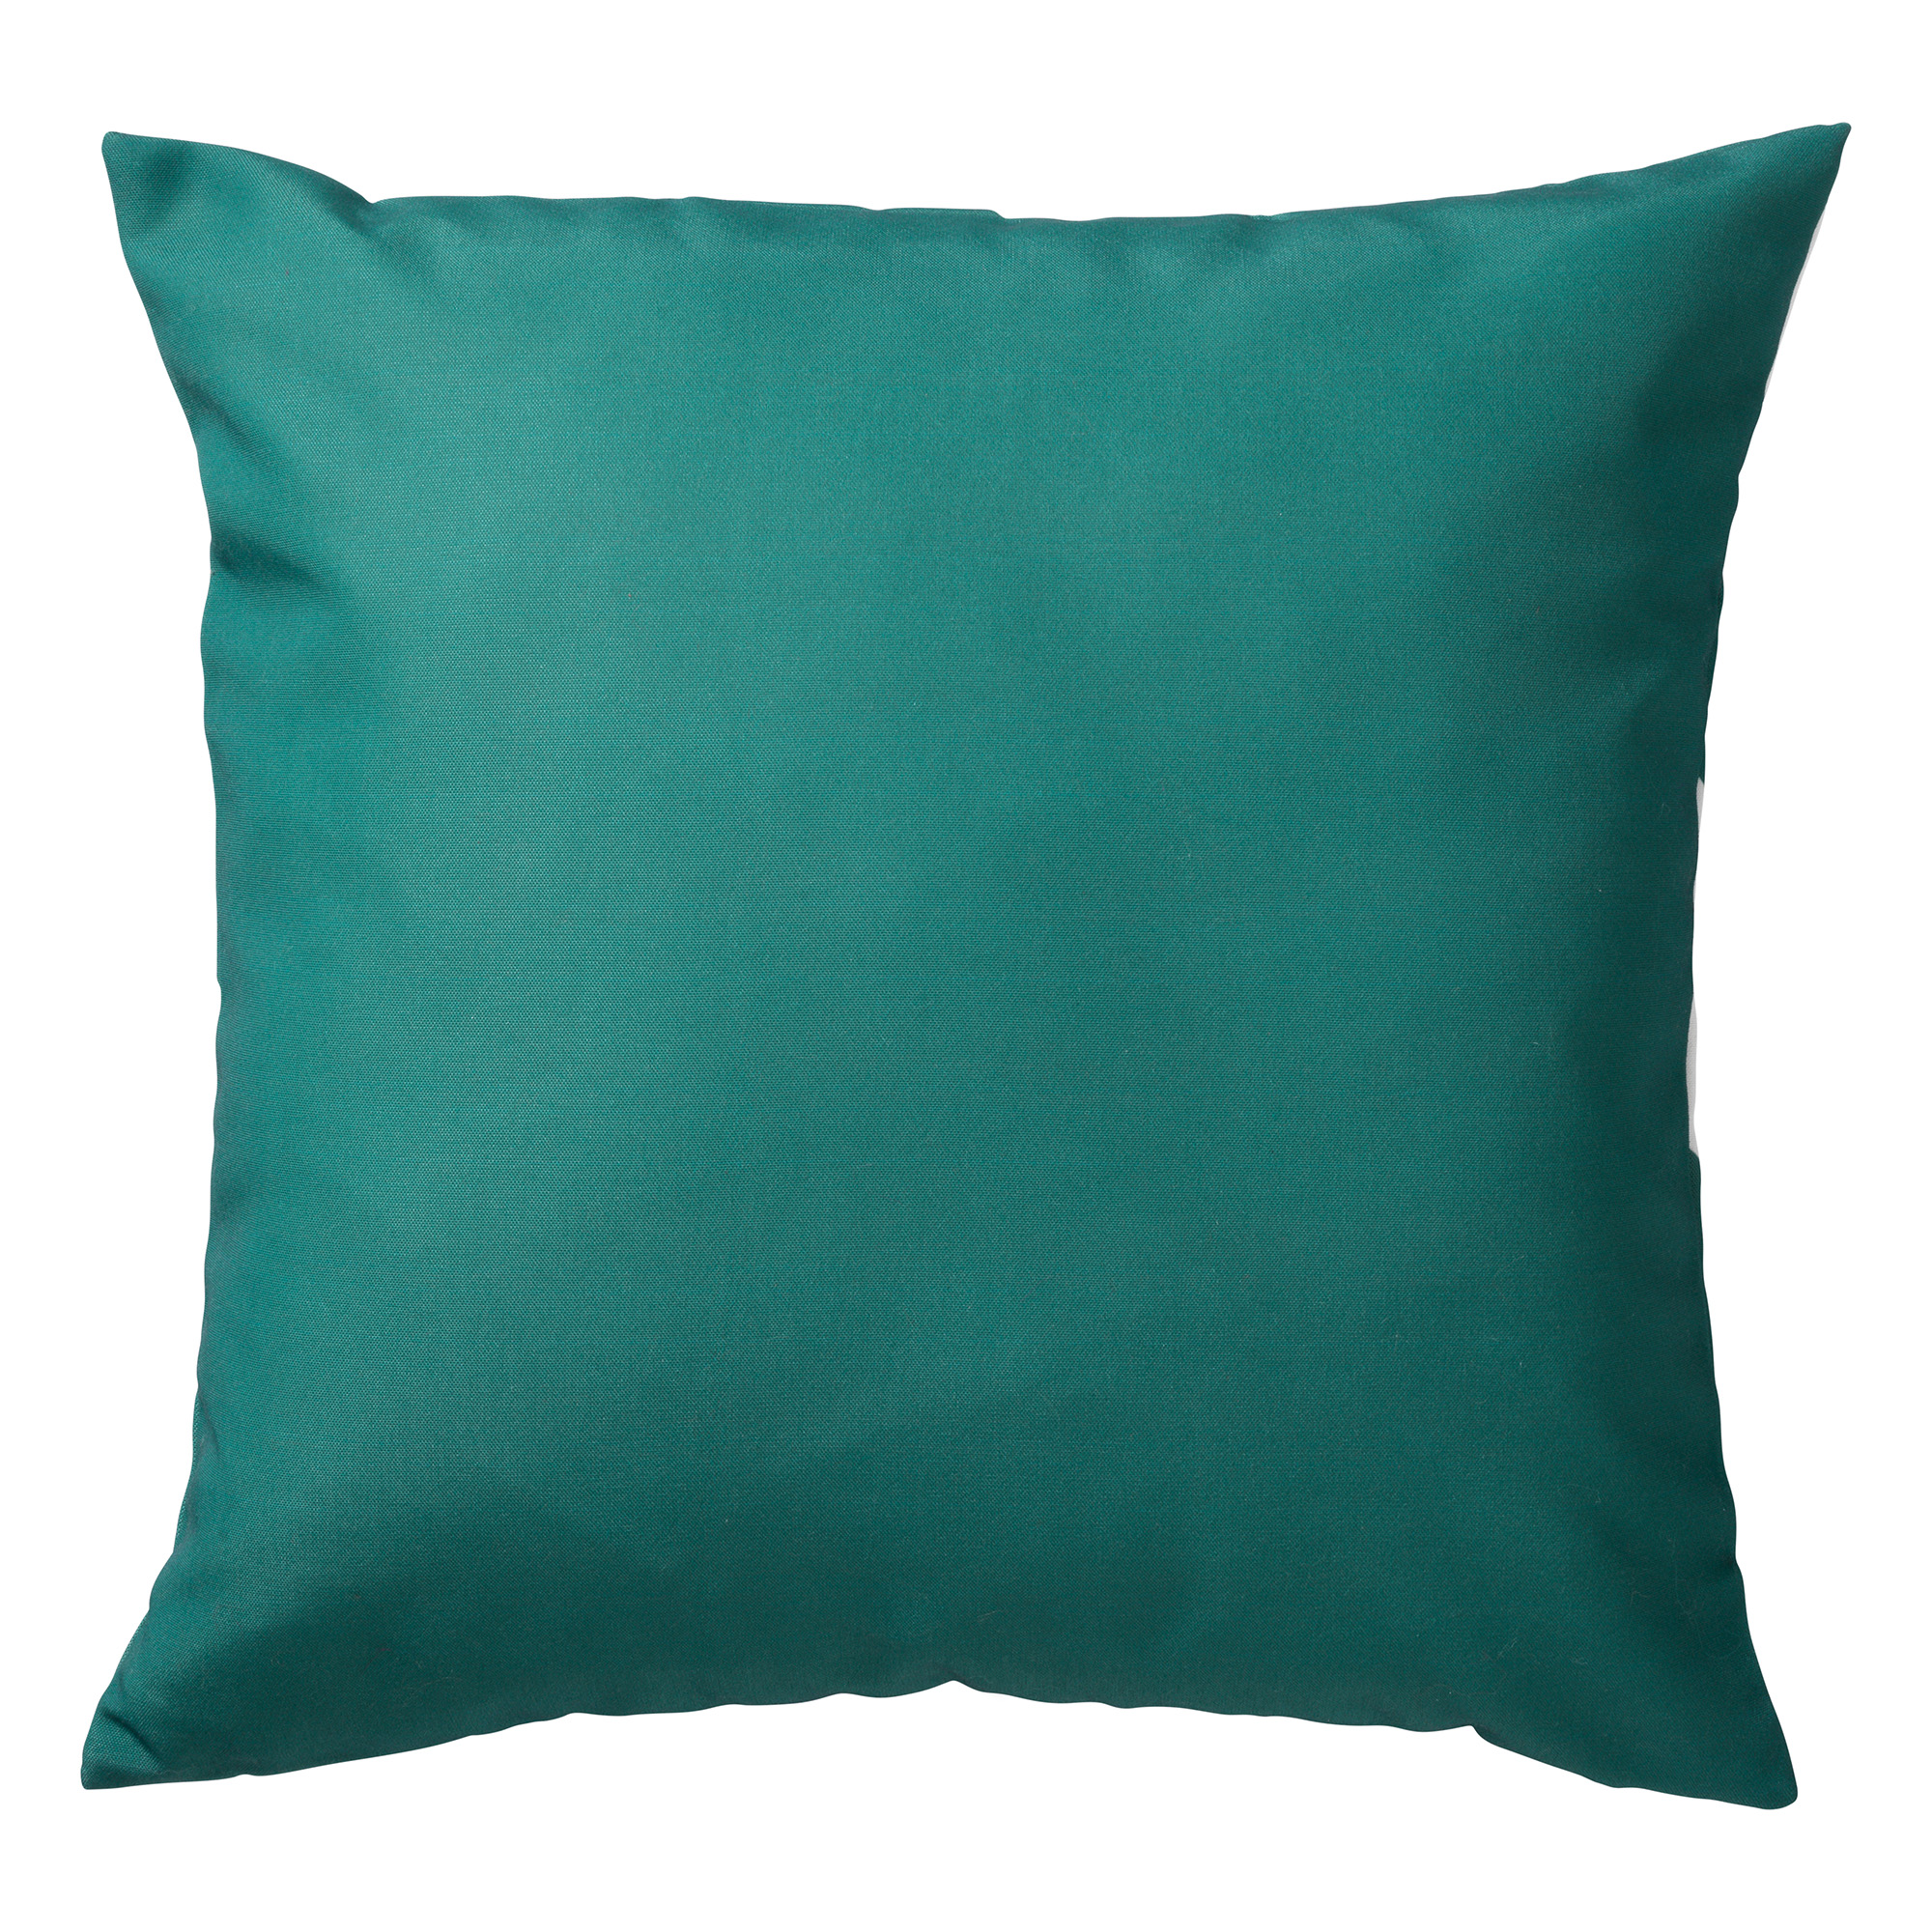 SANTORINI - Kussenhoes outdoor Sagebrush Green 45x45 cm